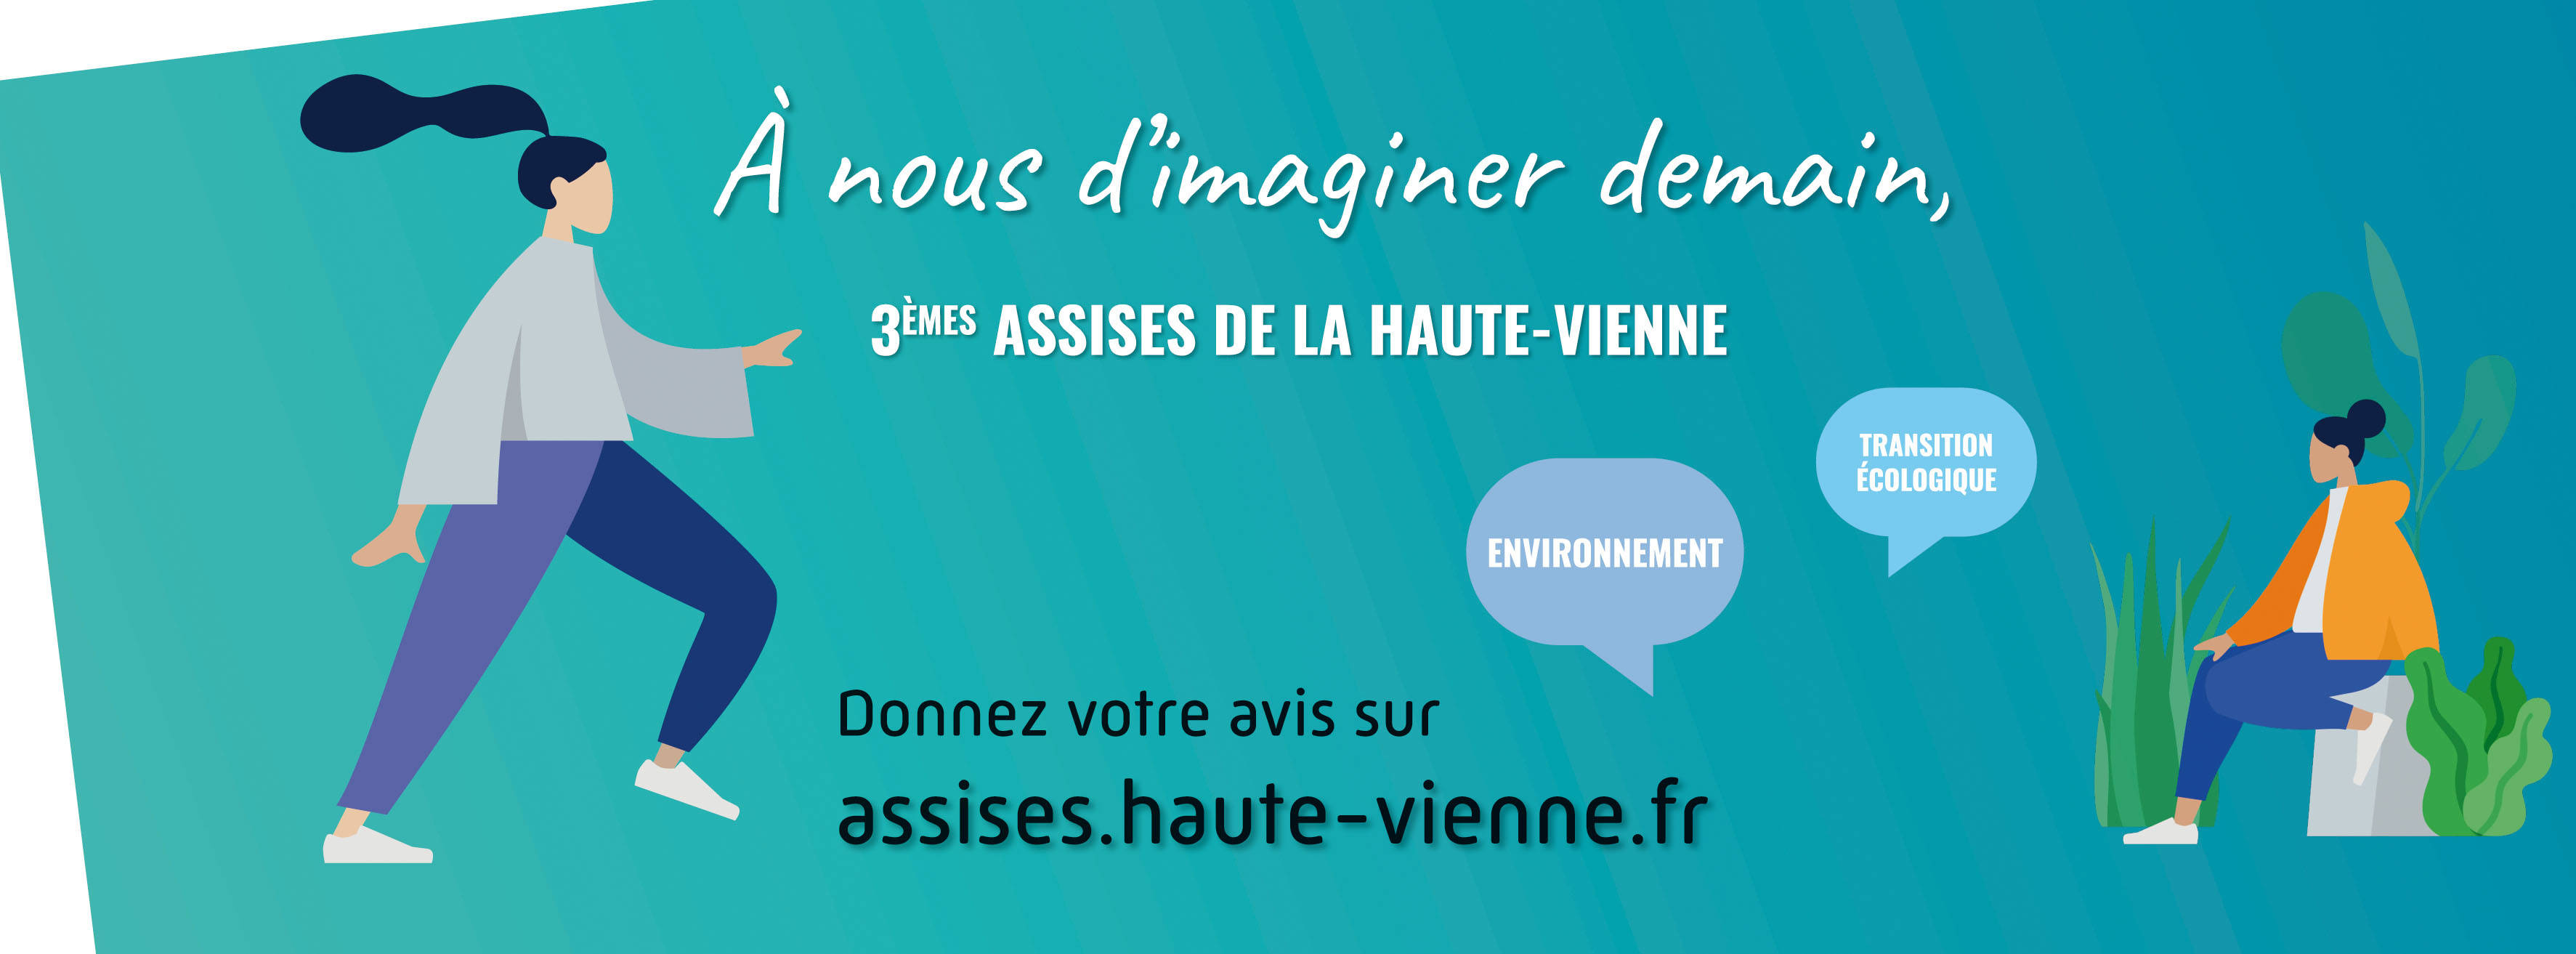 assises facebook